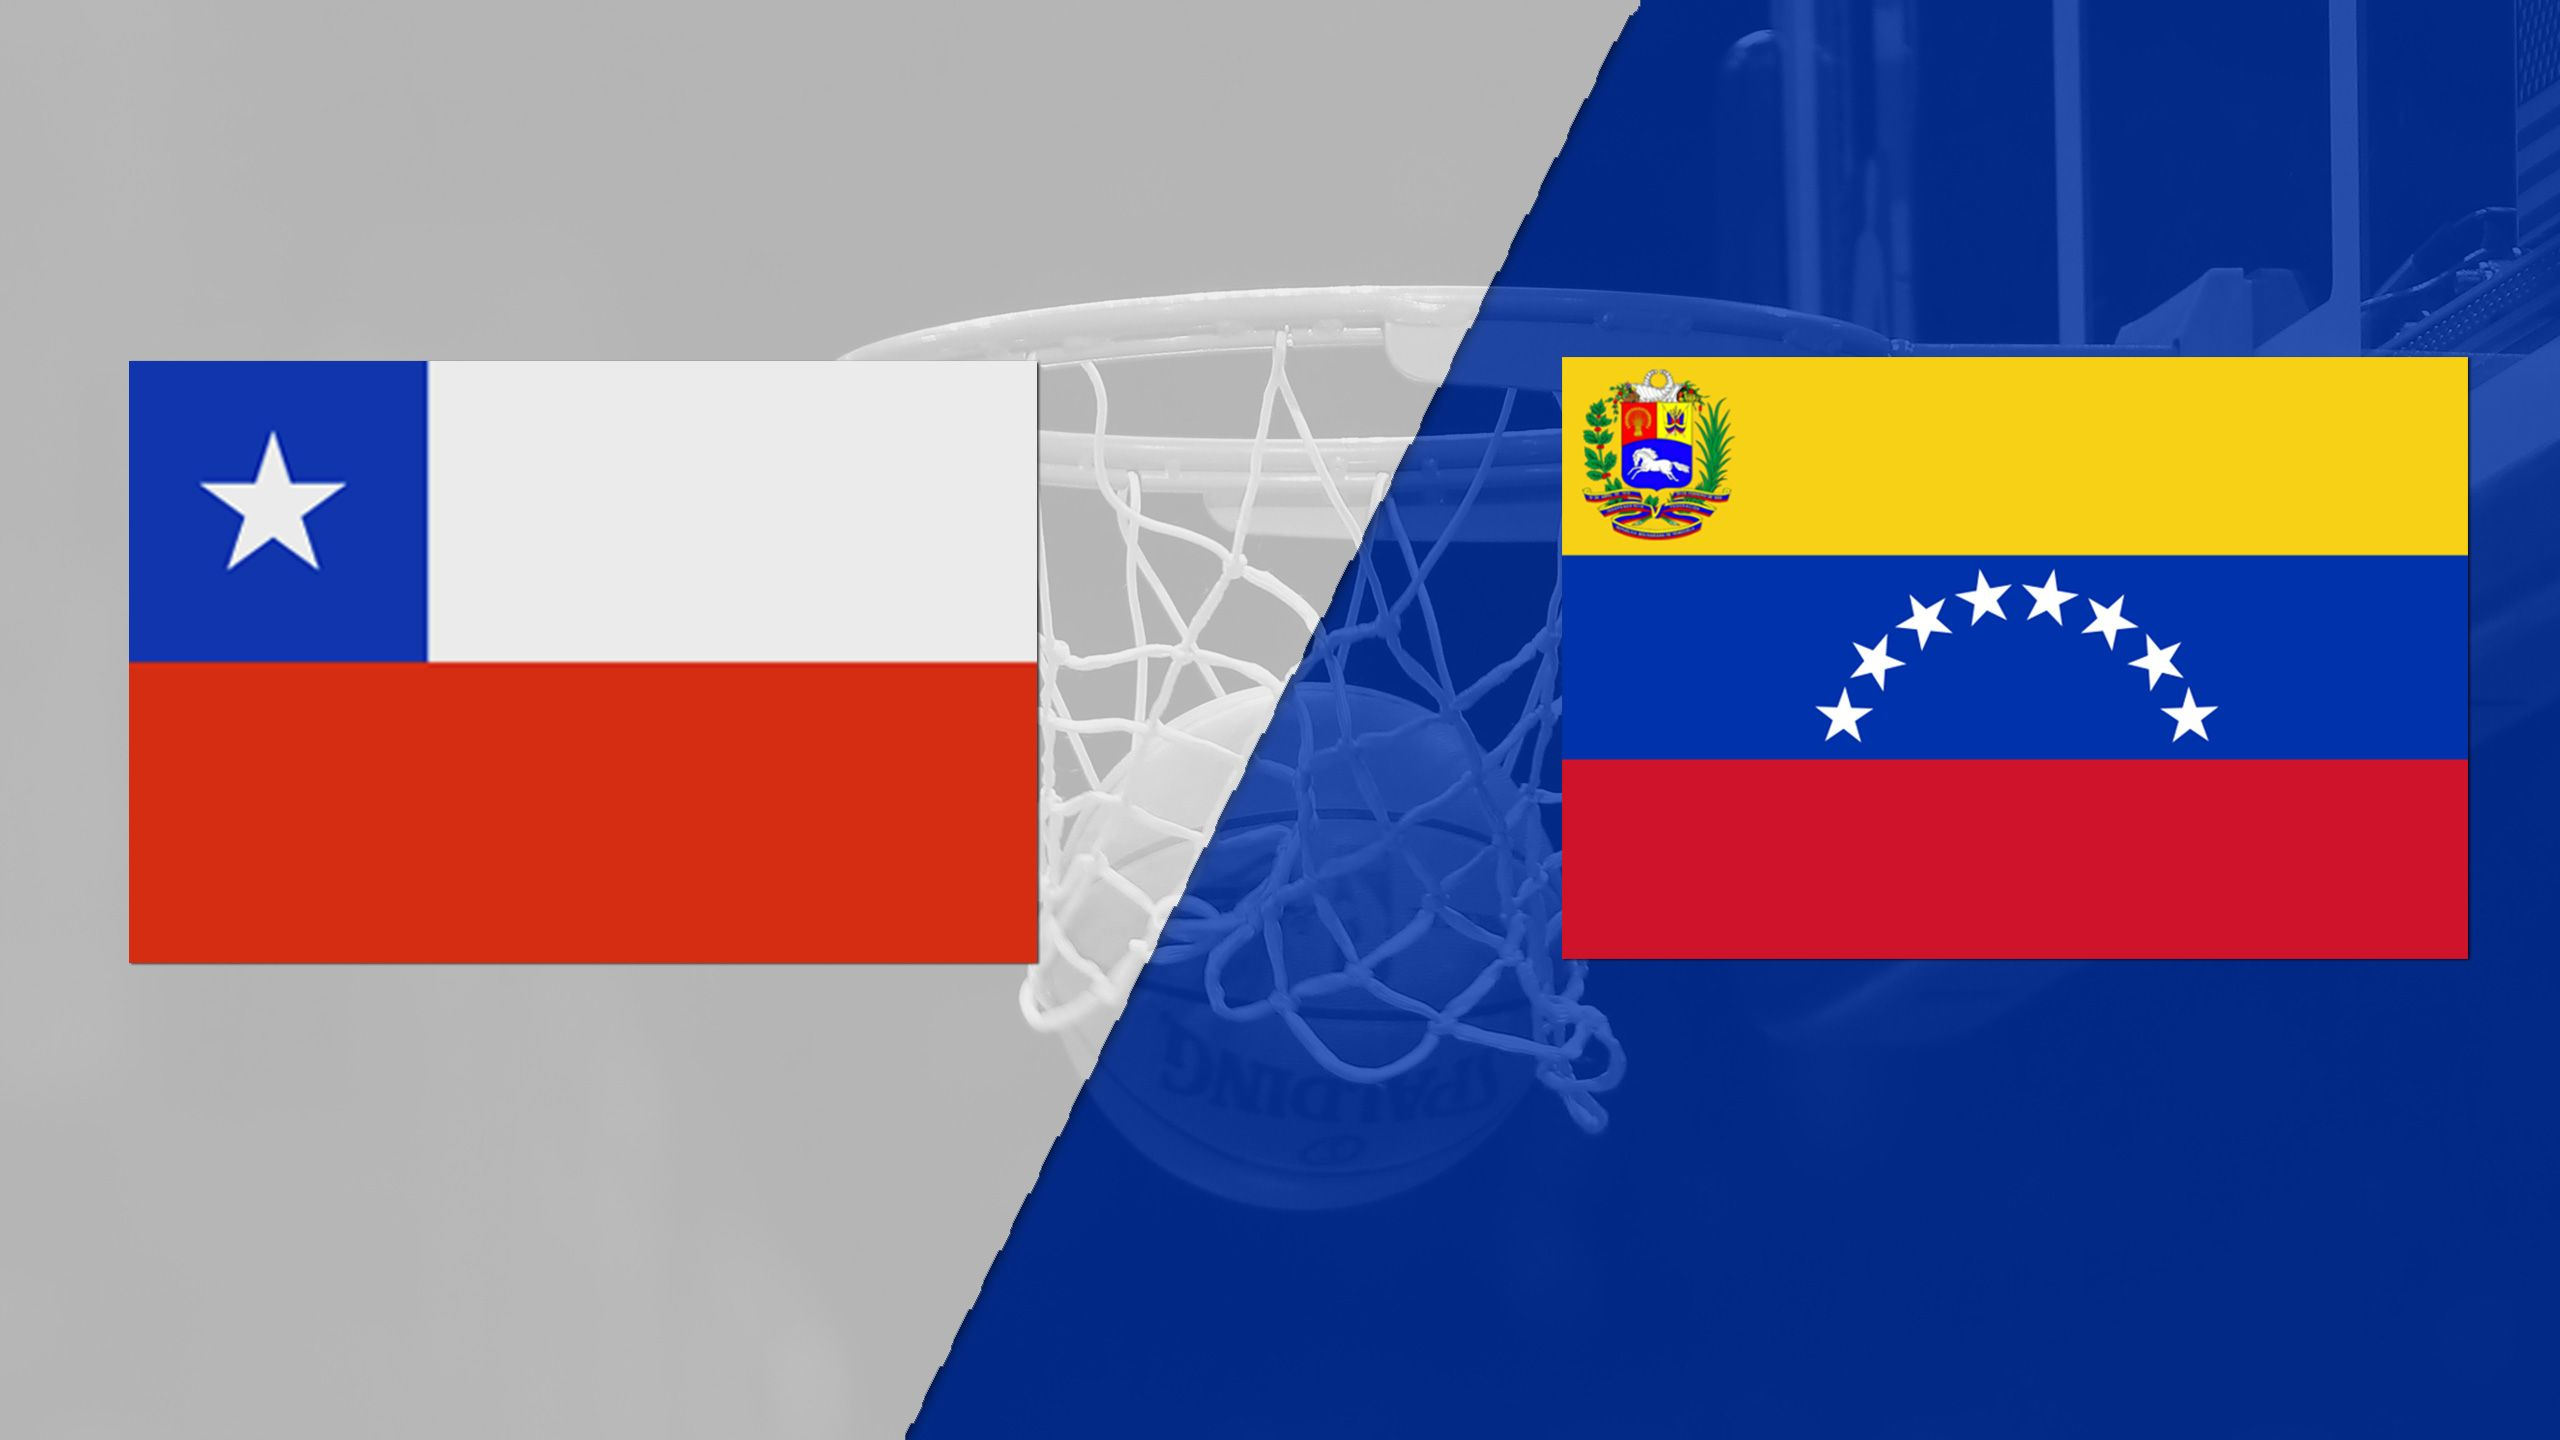 Chile vs. Venezuela (FIBA World Cup 2019 Qualifier)